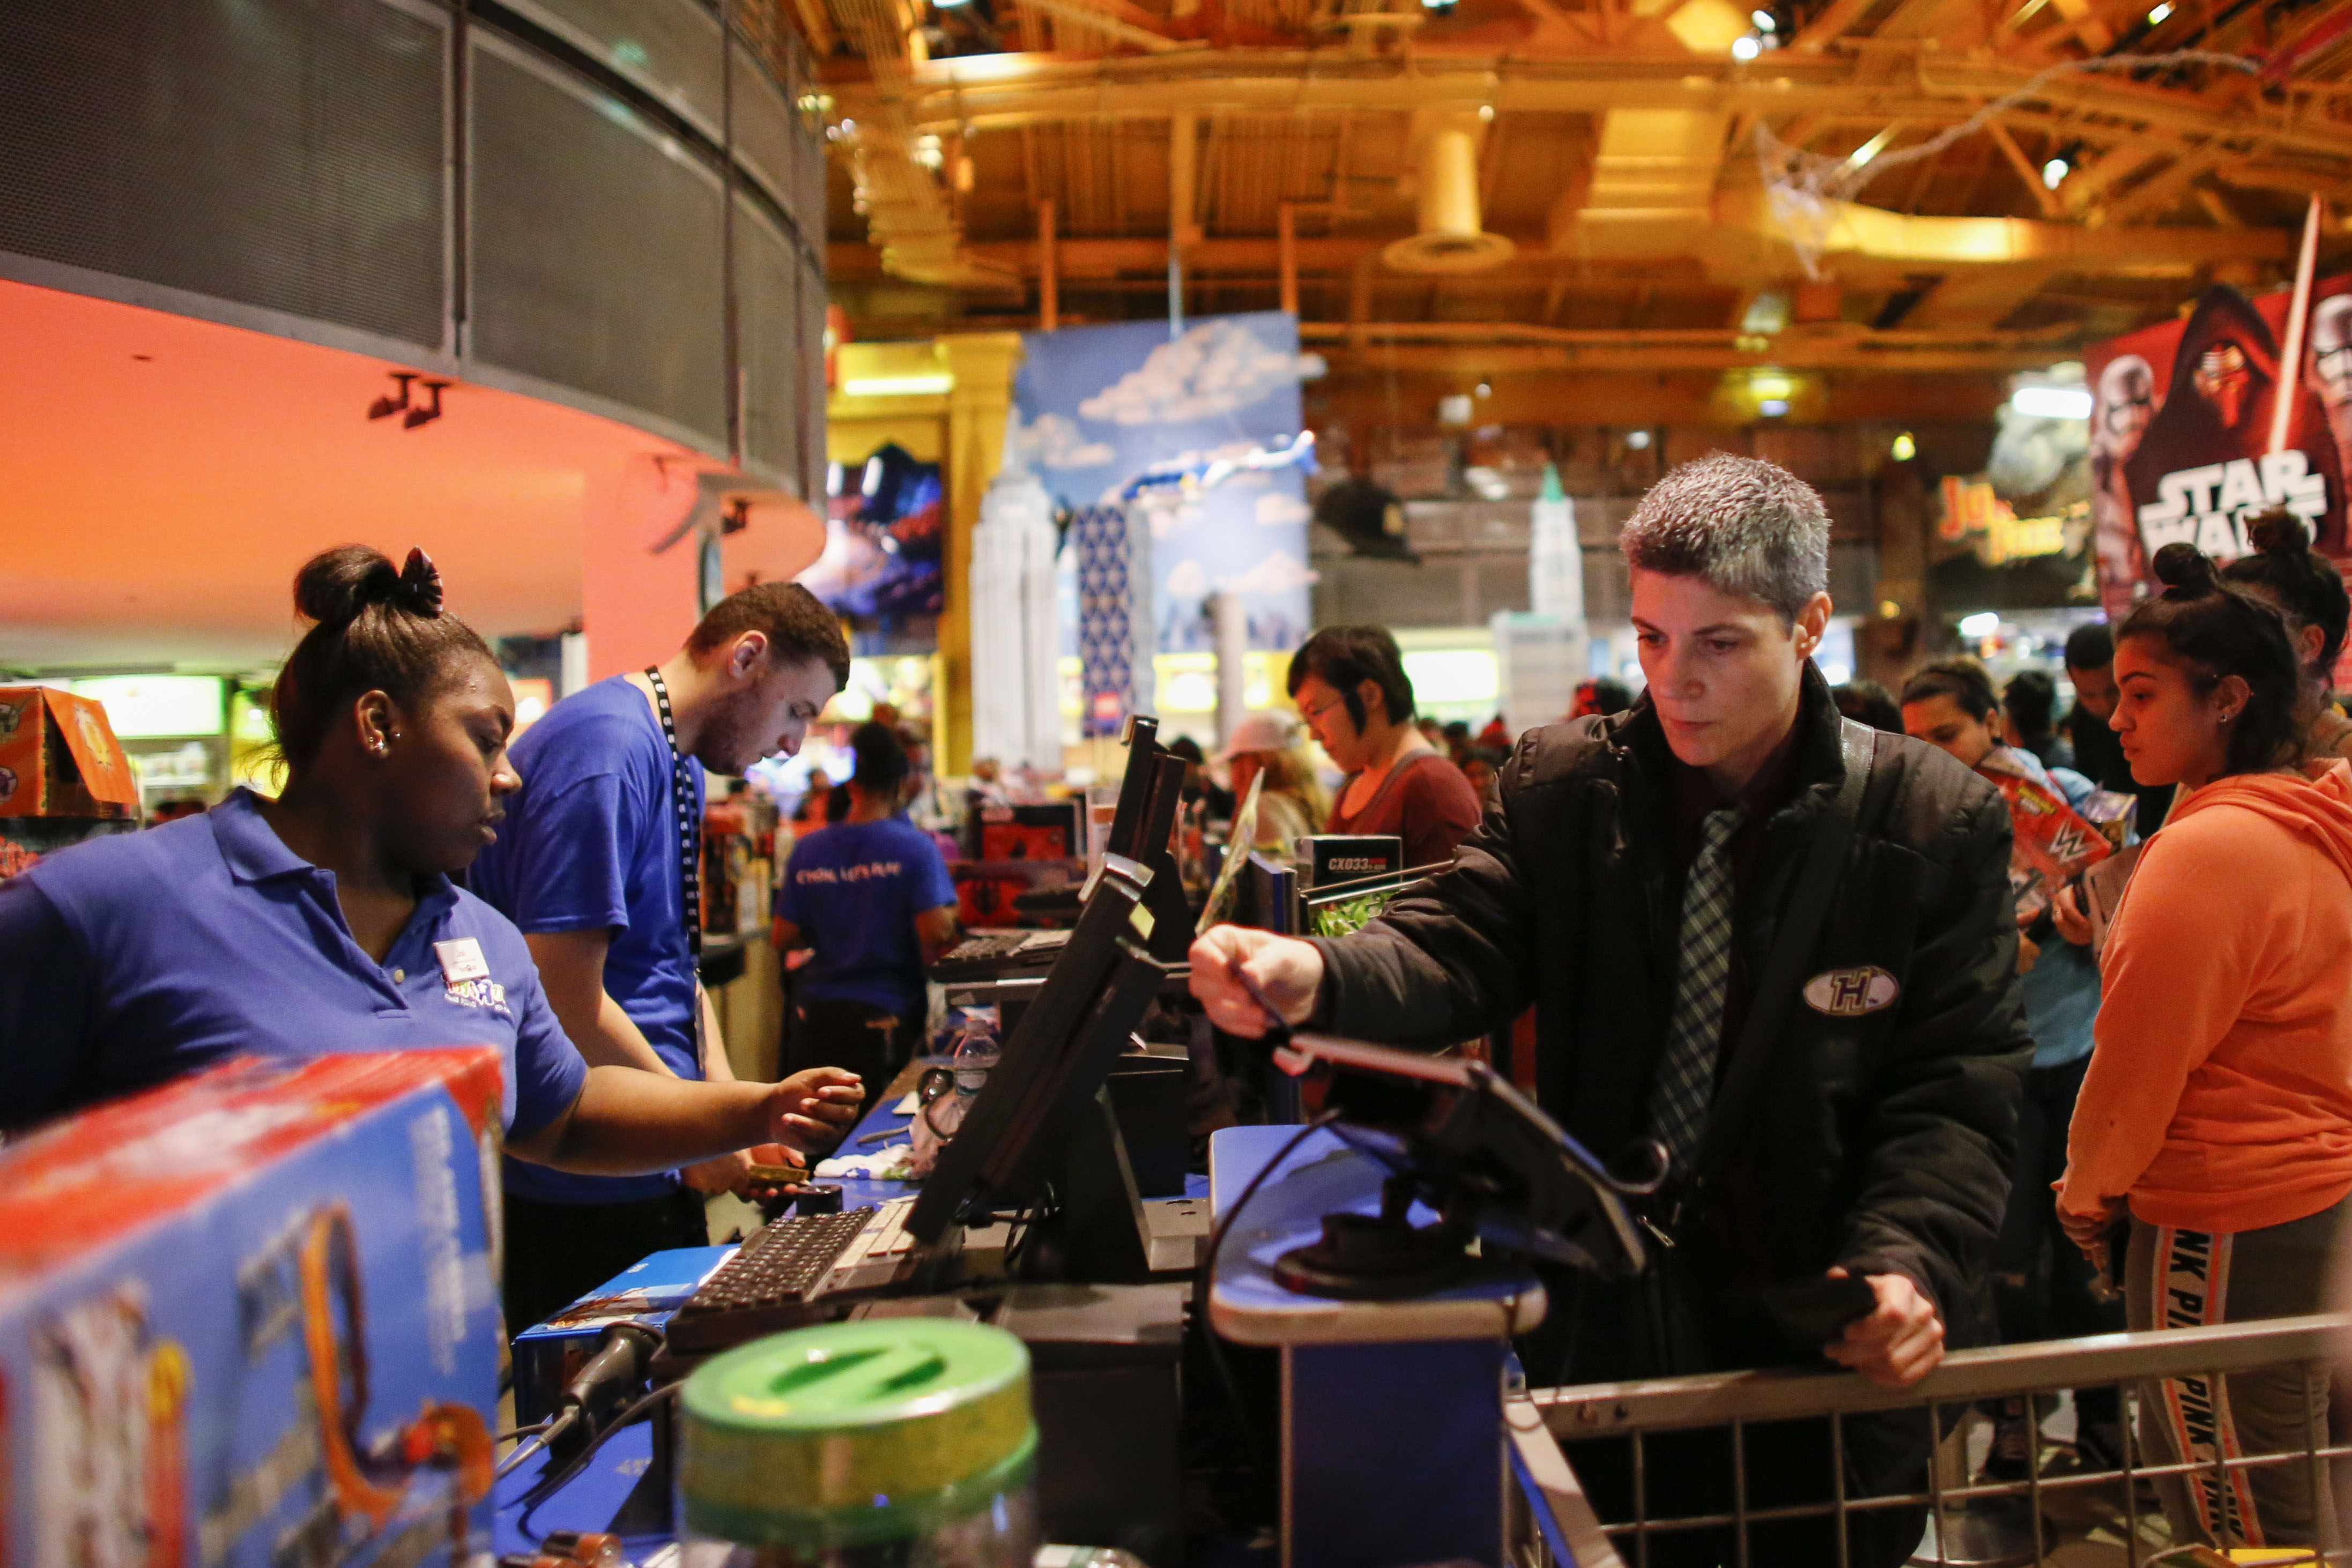 Shoppers pay for items at a Toys R Us store on December 24, 2015 in New York City.